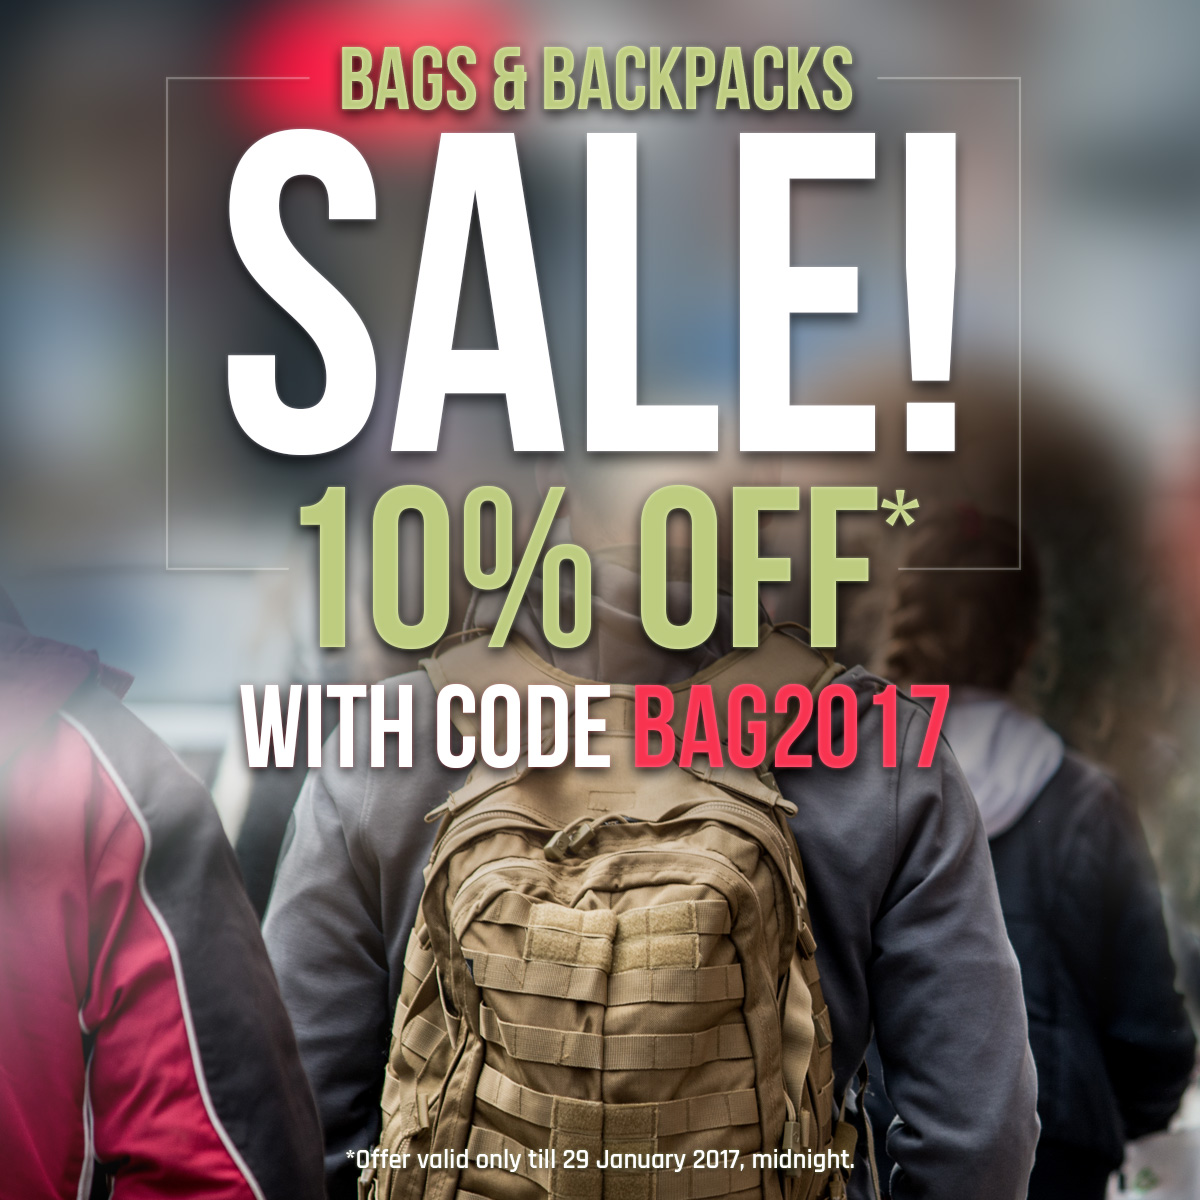 Bags and Backpacks Sale!